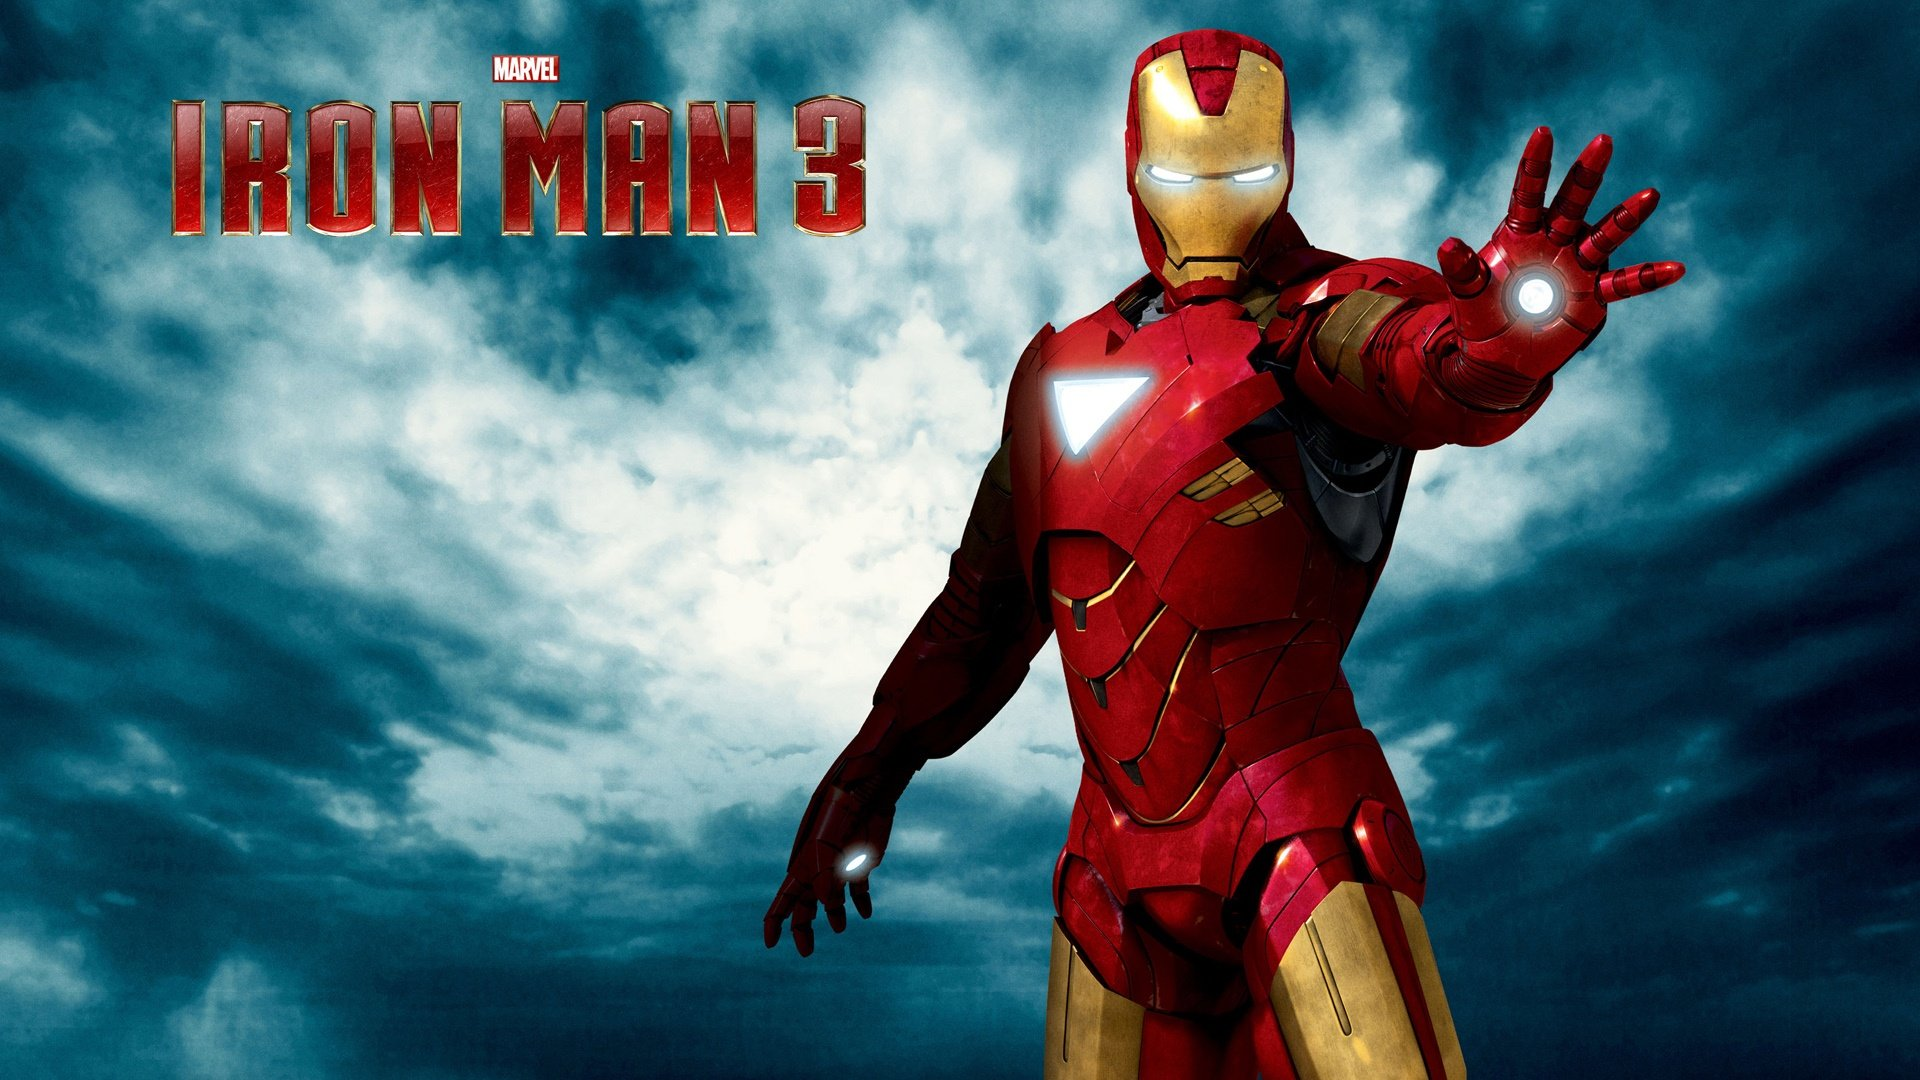 Iron Man 3 Wallpapers HD Wallpapers 1920x1080